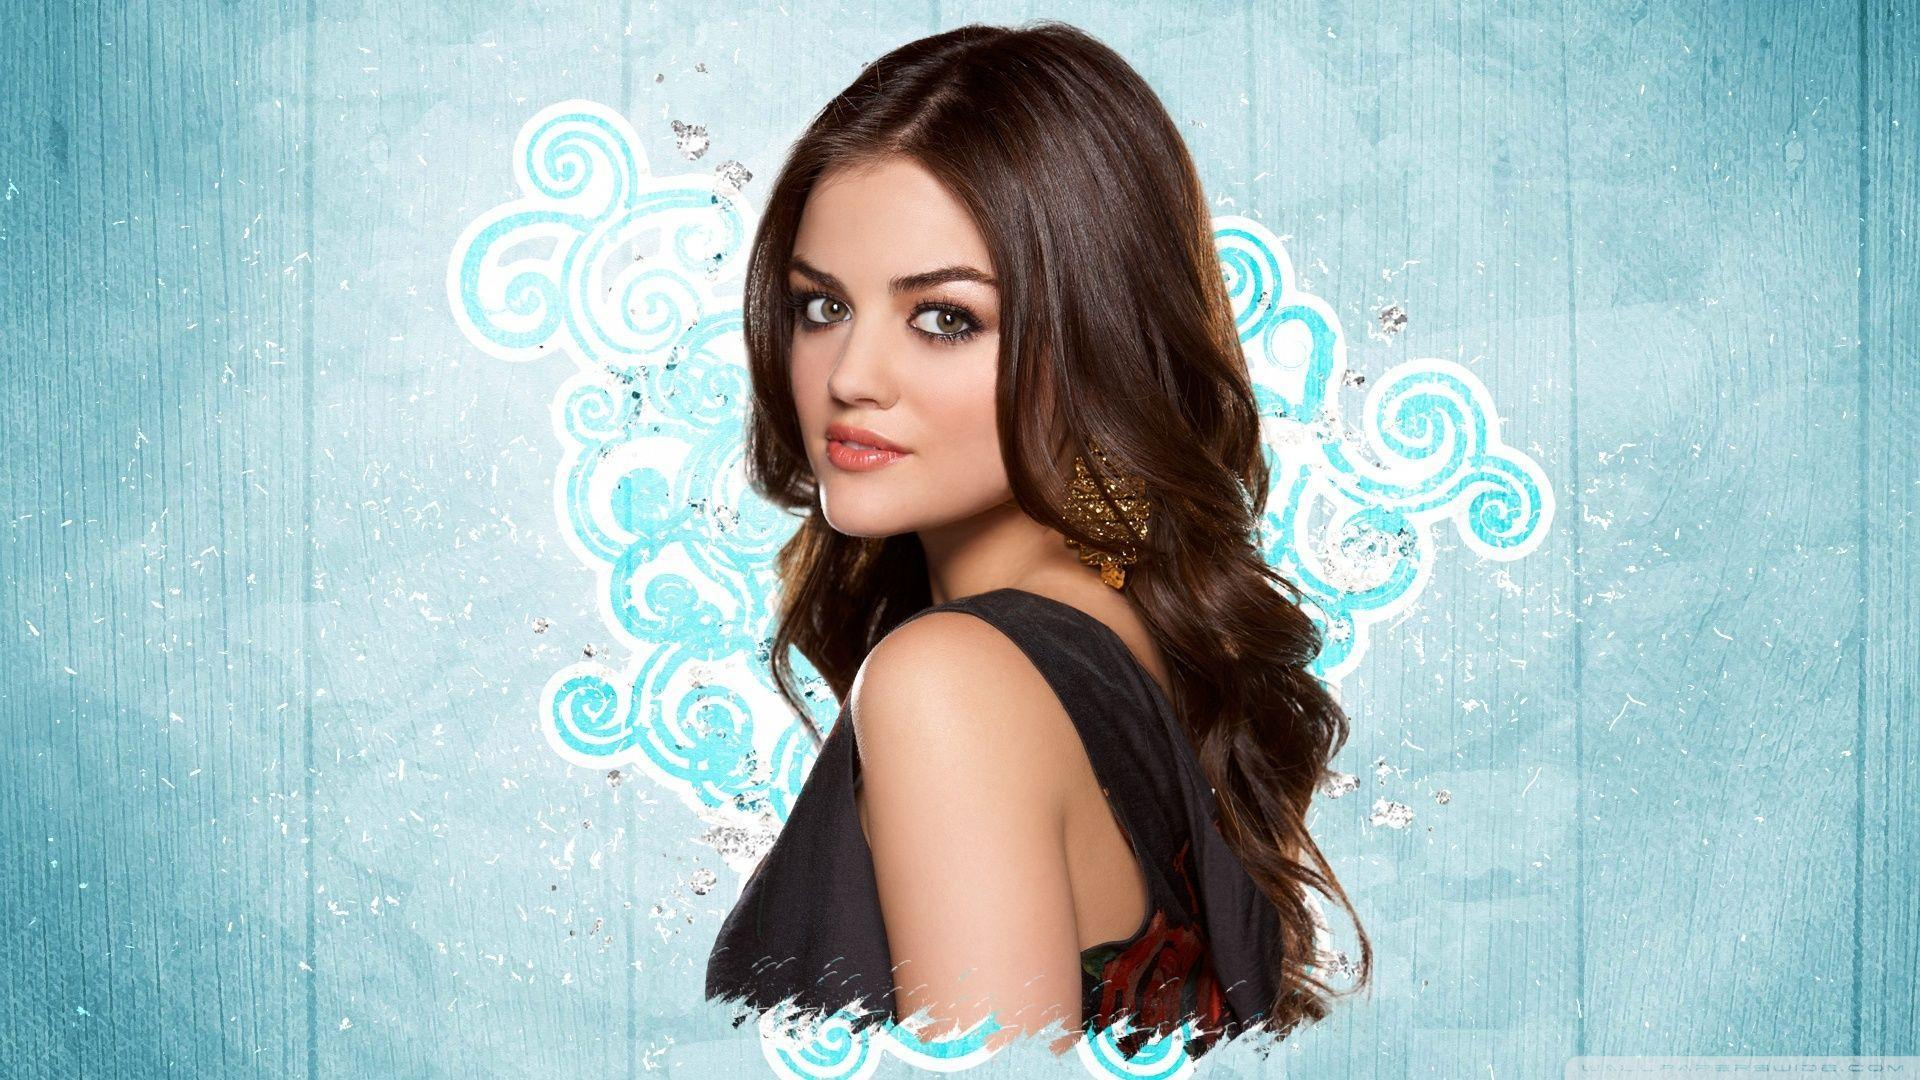 Lucy Hale HD desktop wallpaper : High Definition : Fullscreen : Mobile